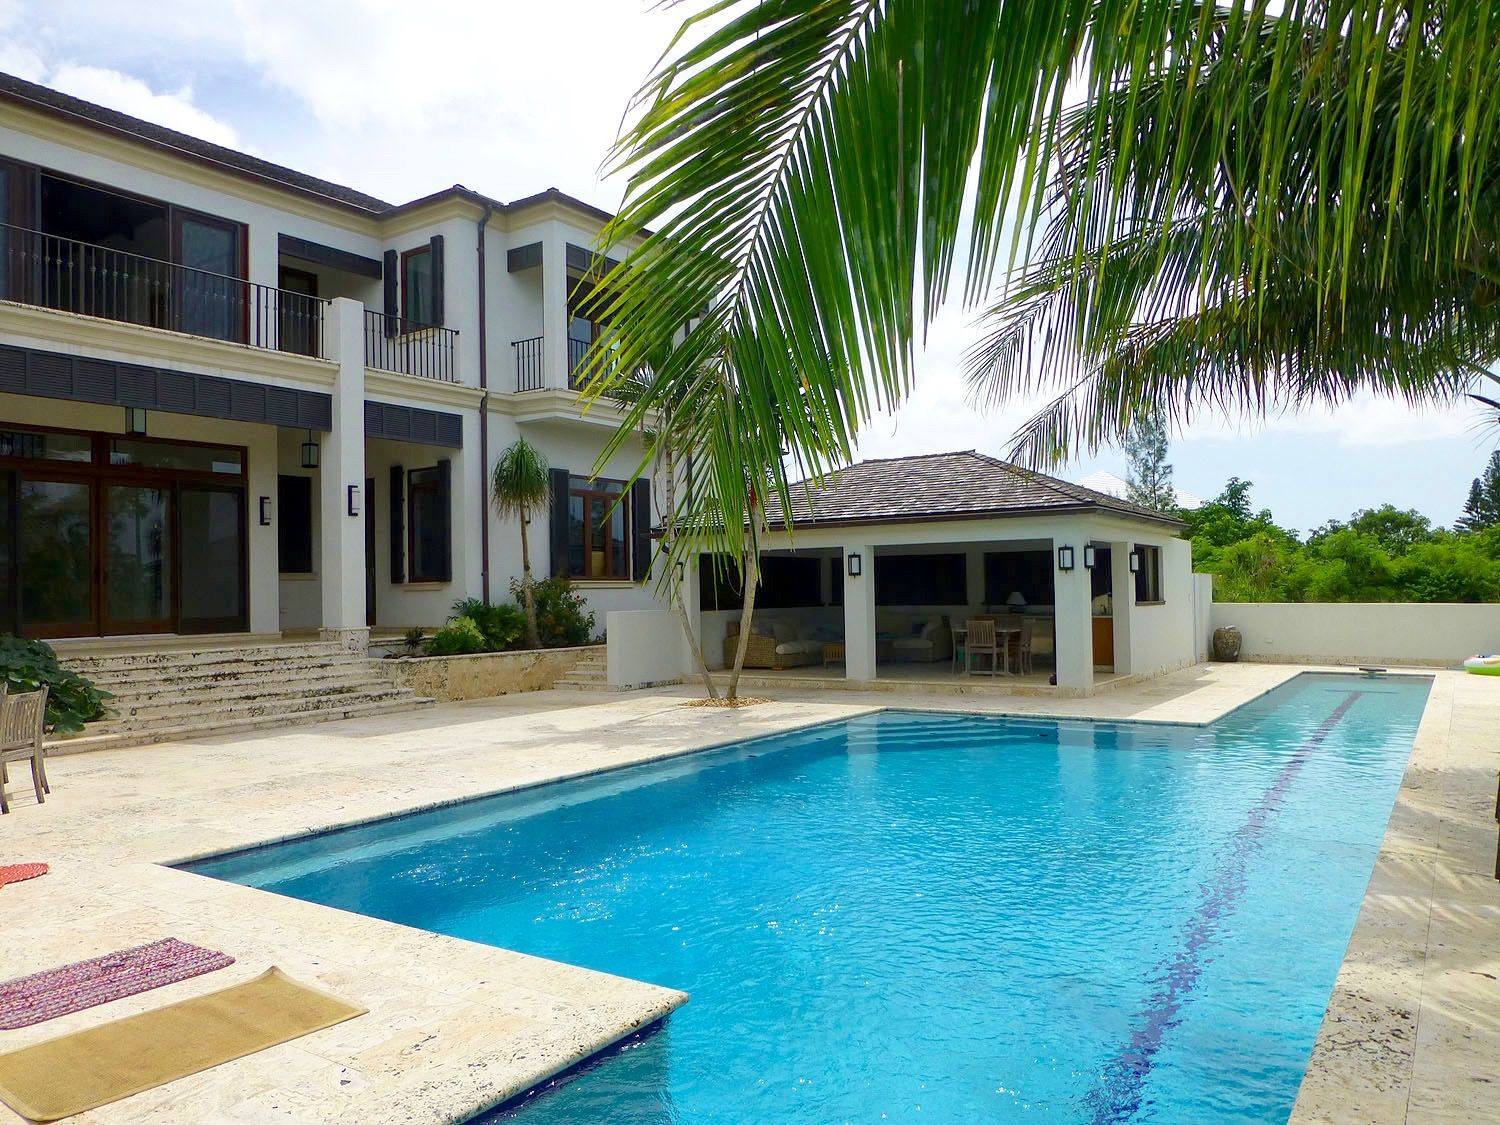 Bahamas Real Estate   Bahamas Luxury Property   Oceanview Luxury Home